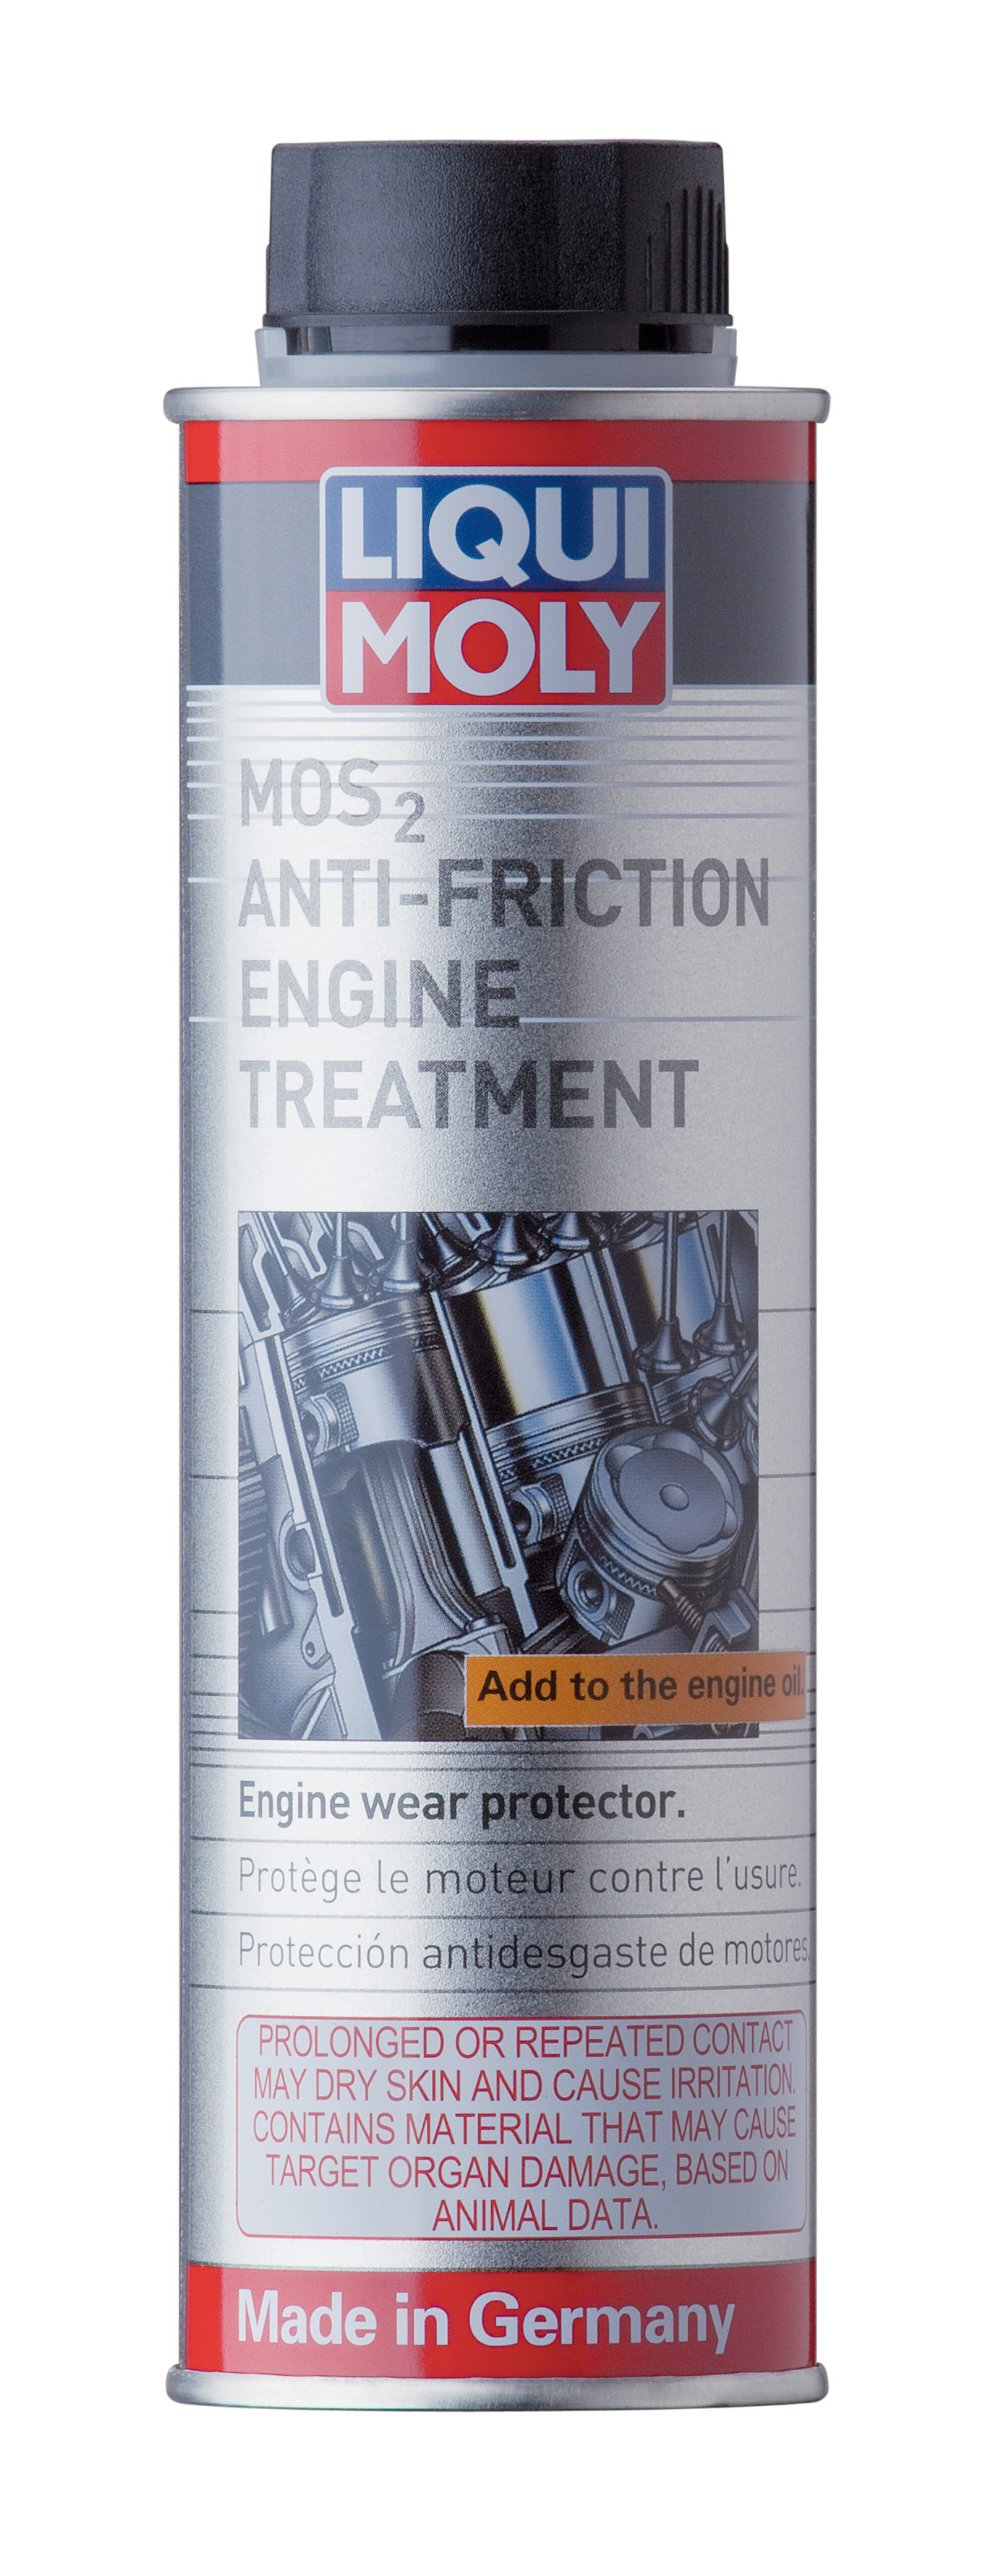 Liqui Moly 2009 Anti Friction Treatment